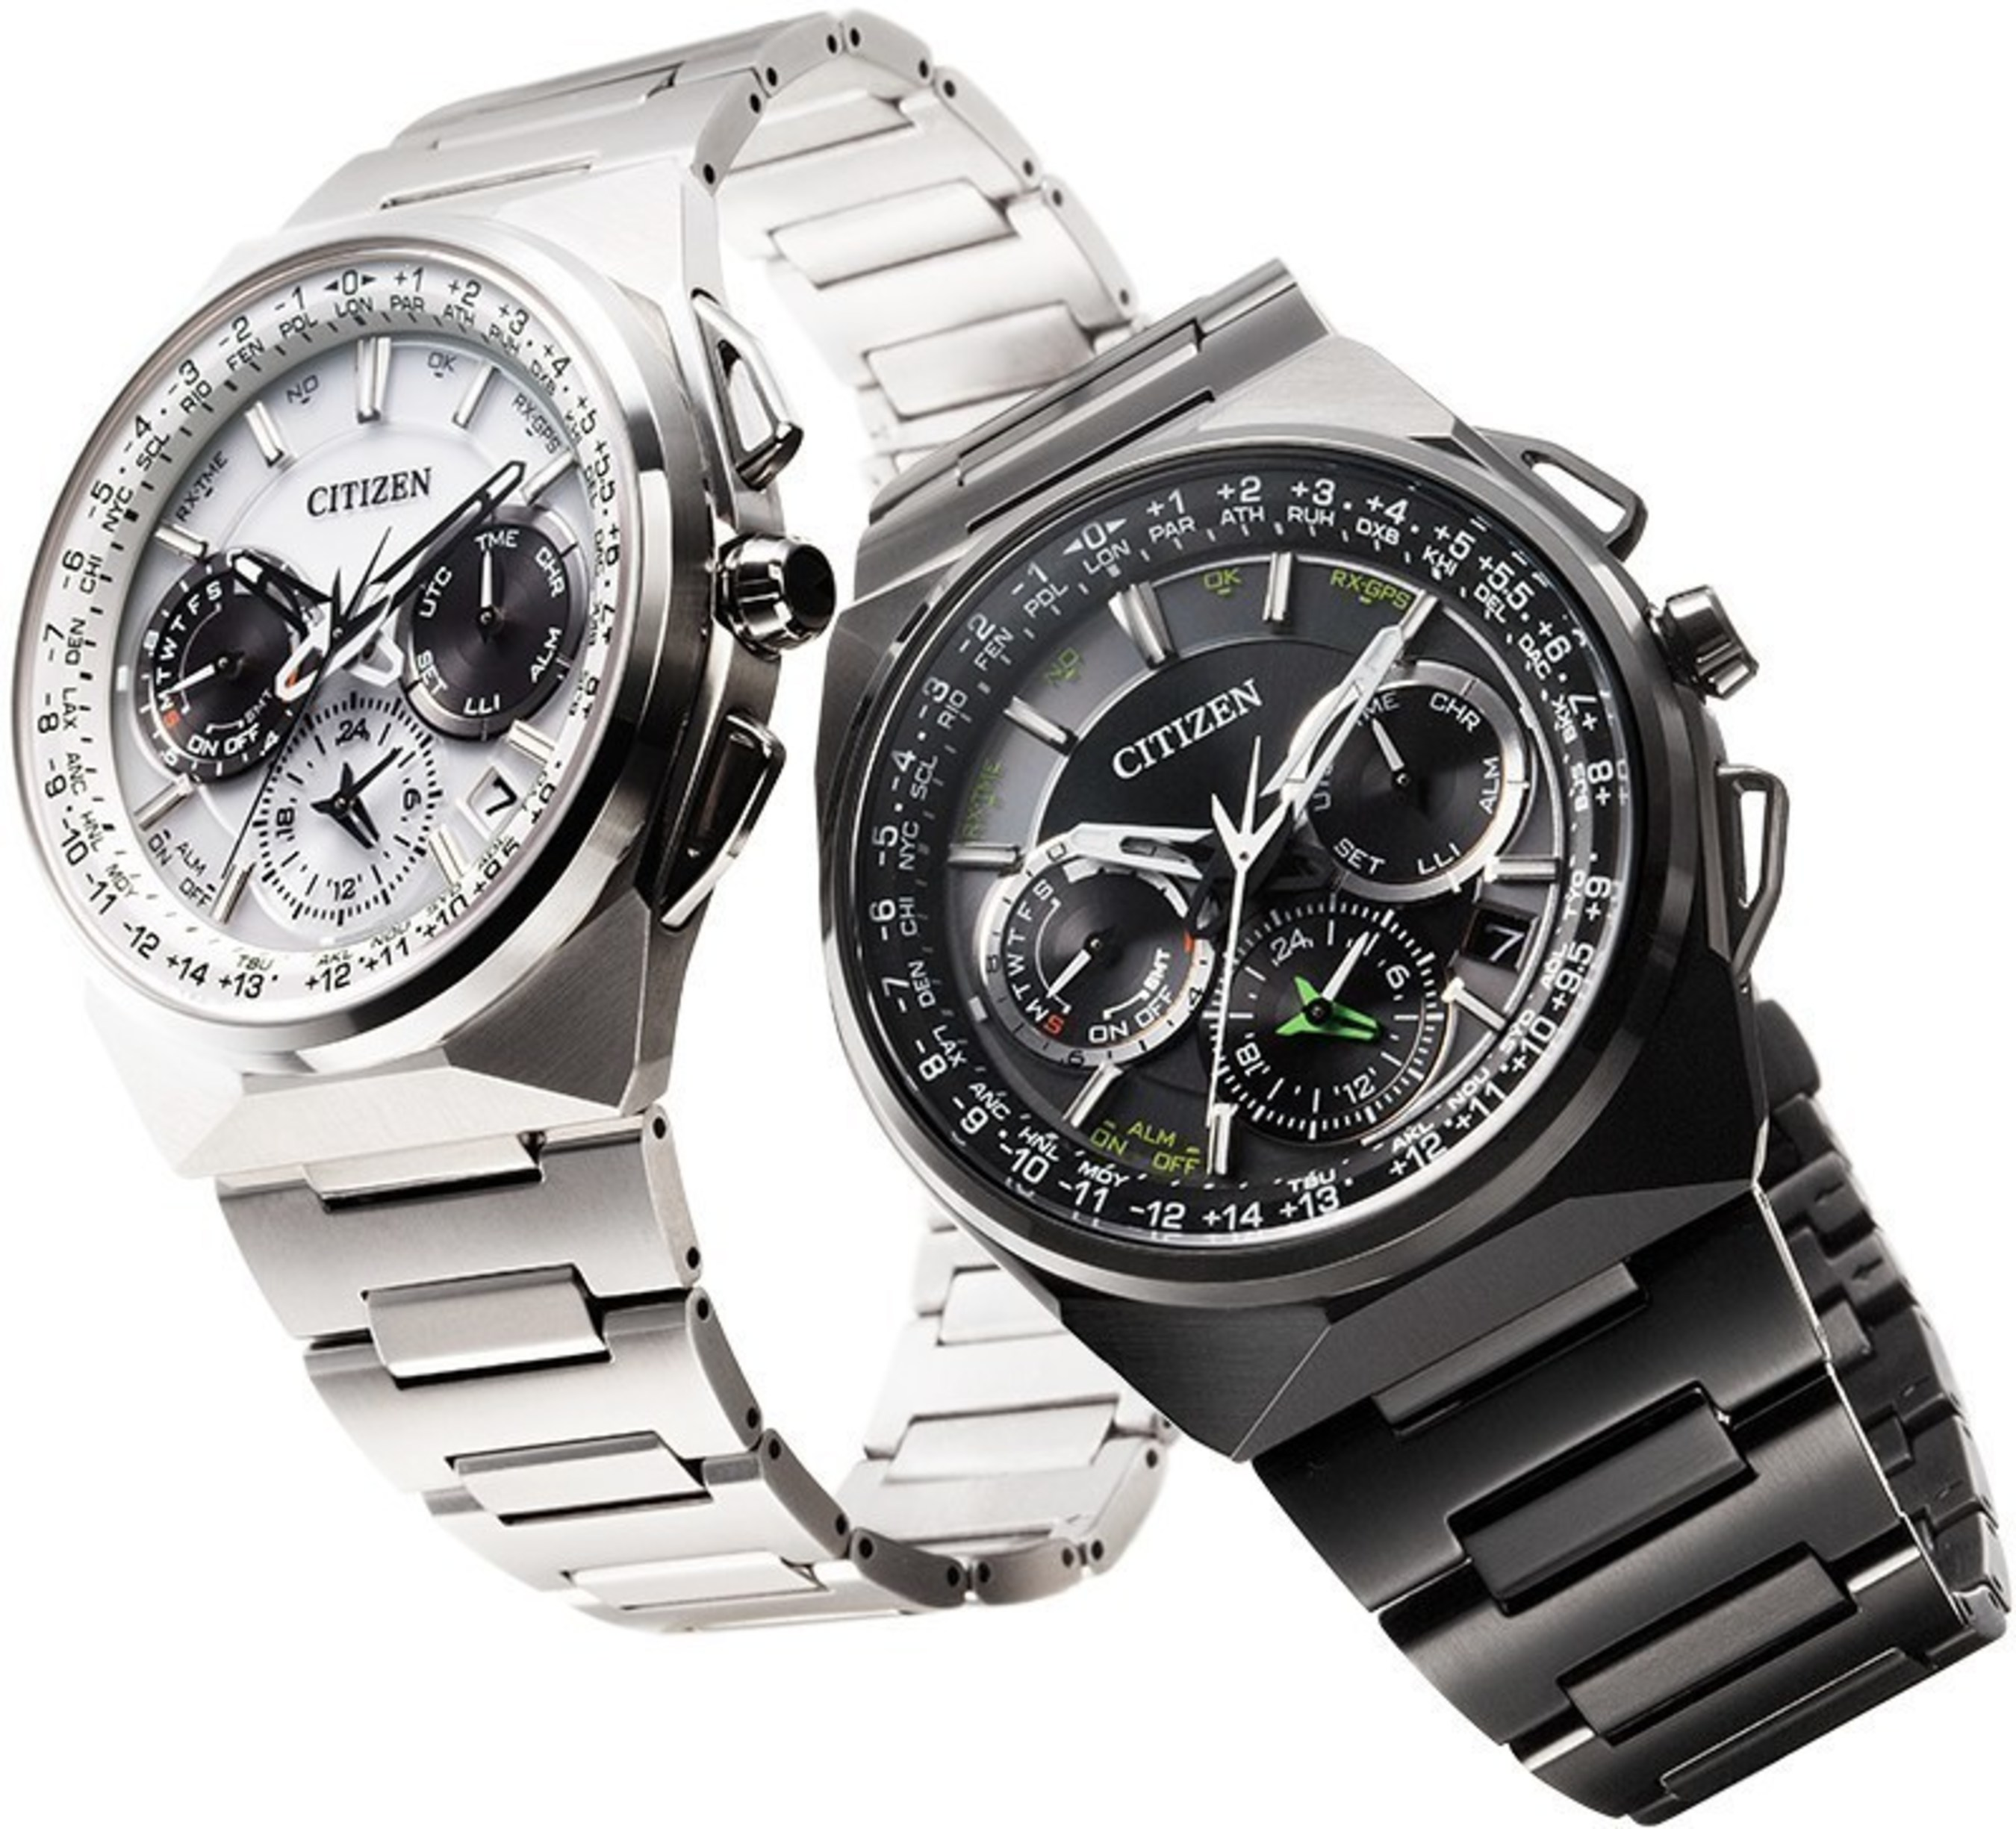 4ad71f8cae1 CITIZEN to introduce new Eco-Drive SATELLITE WAVE model in autumn 2015